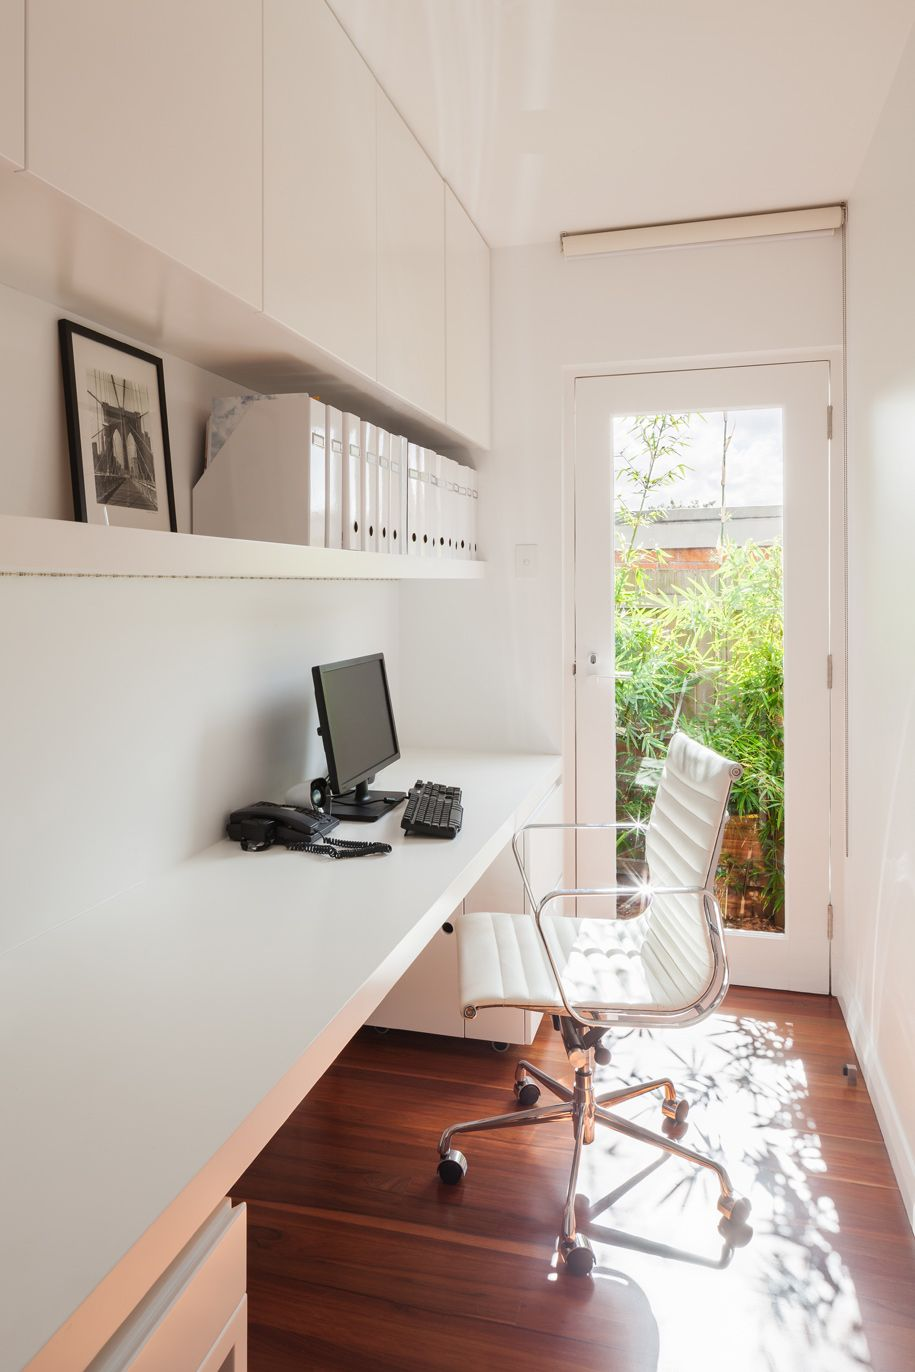 Small 10x10 Study Room Layout: How To Renovate A 1950s Suburban Gem …